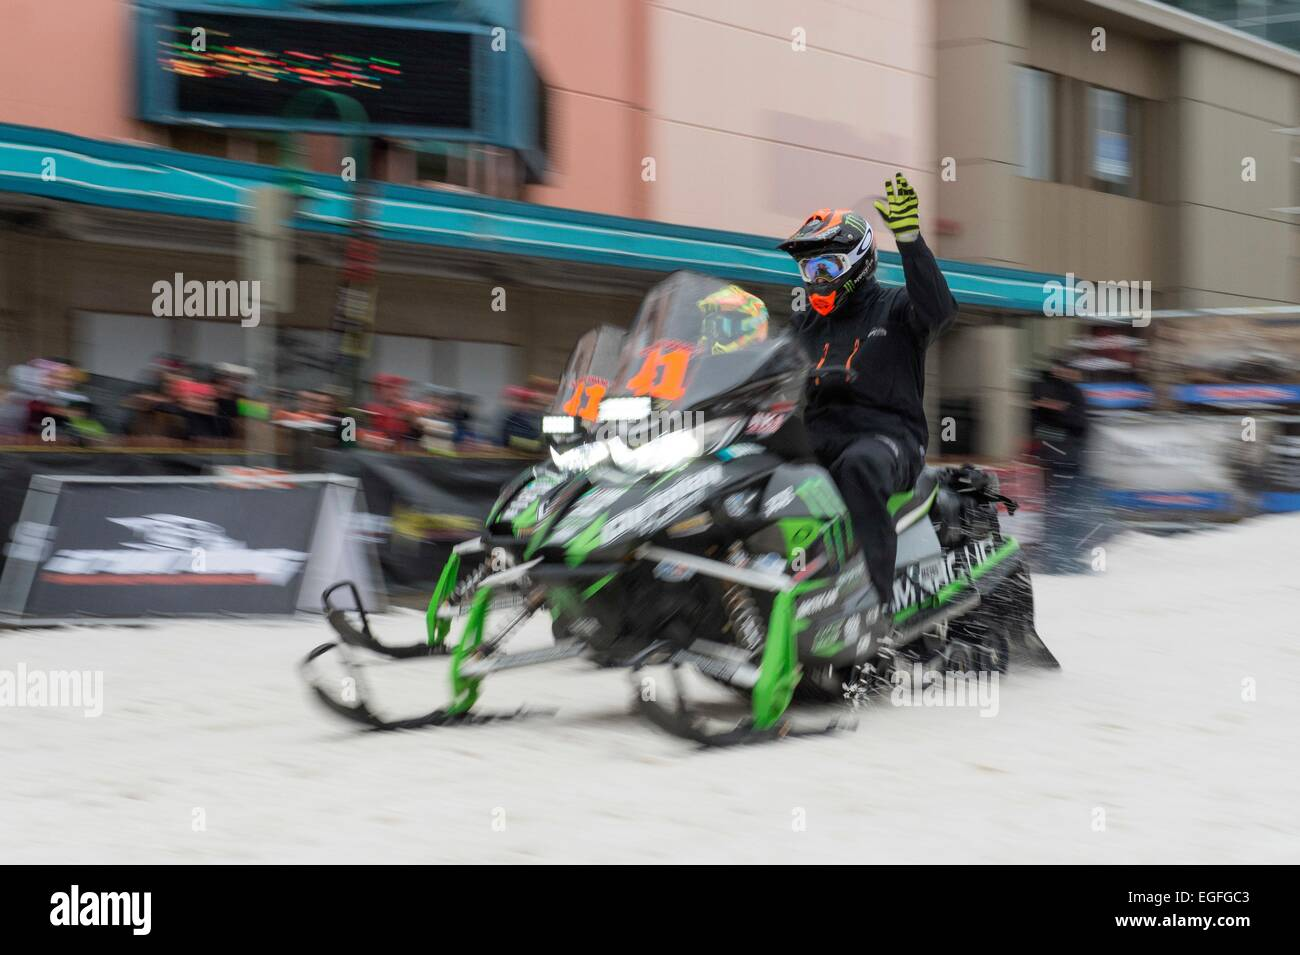 Competitors take off at the start the 2,000 mile Iron Dog race February 21, 2015 in Anchorage, Alaska. The Iron - Stock Image